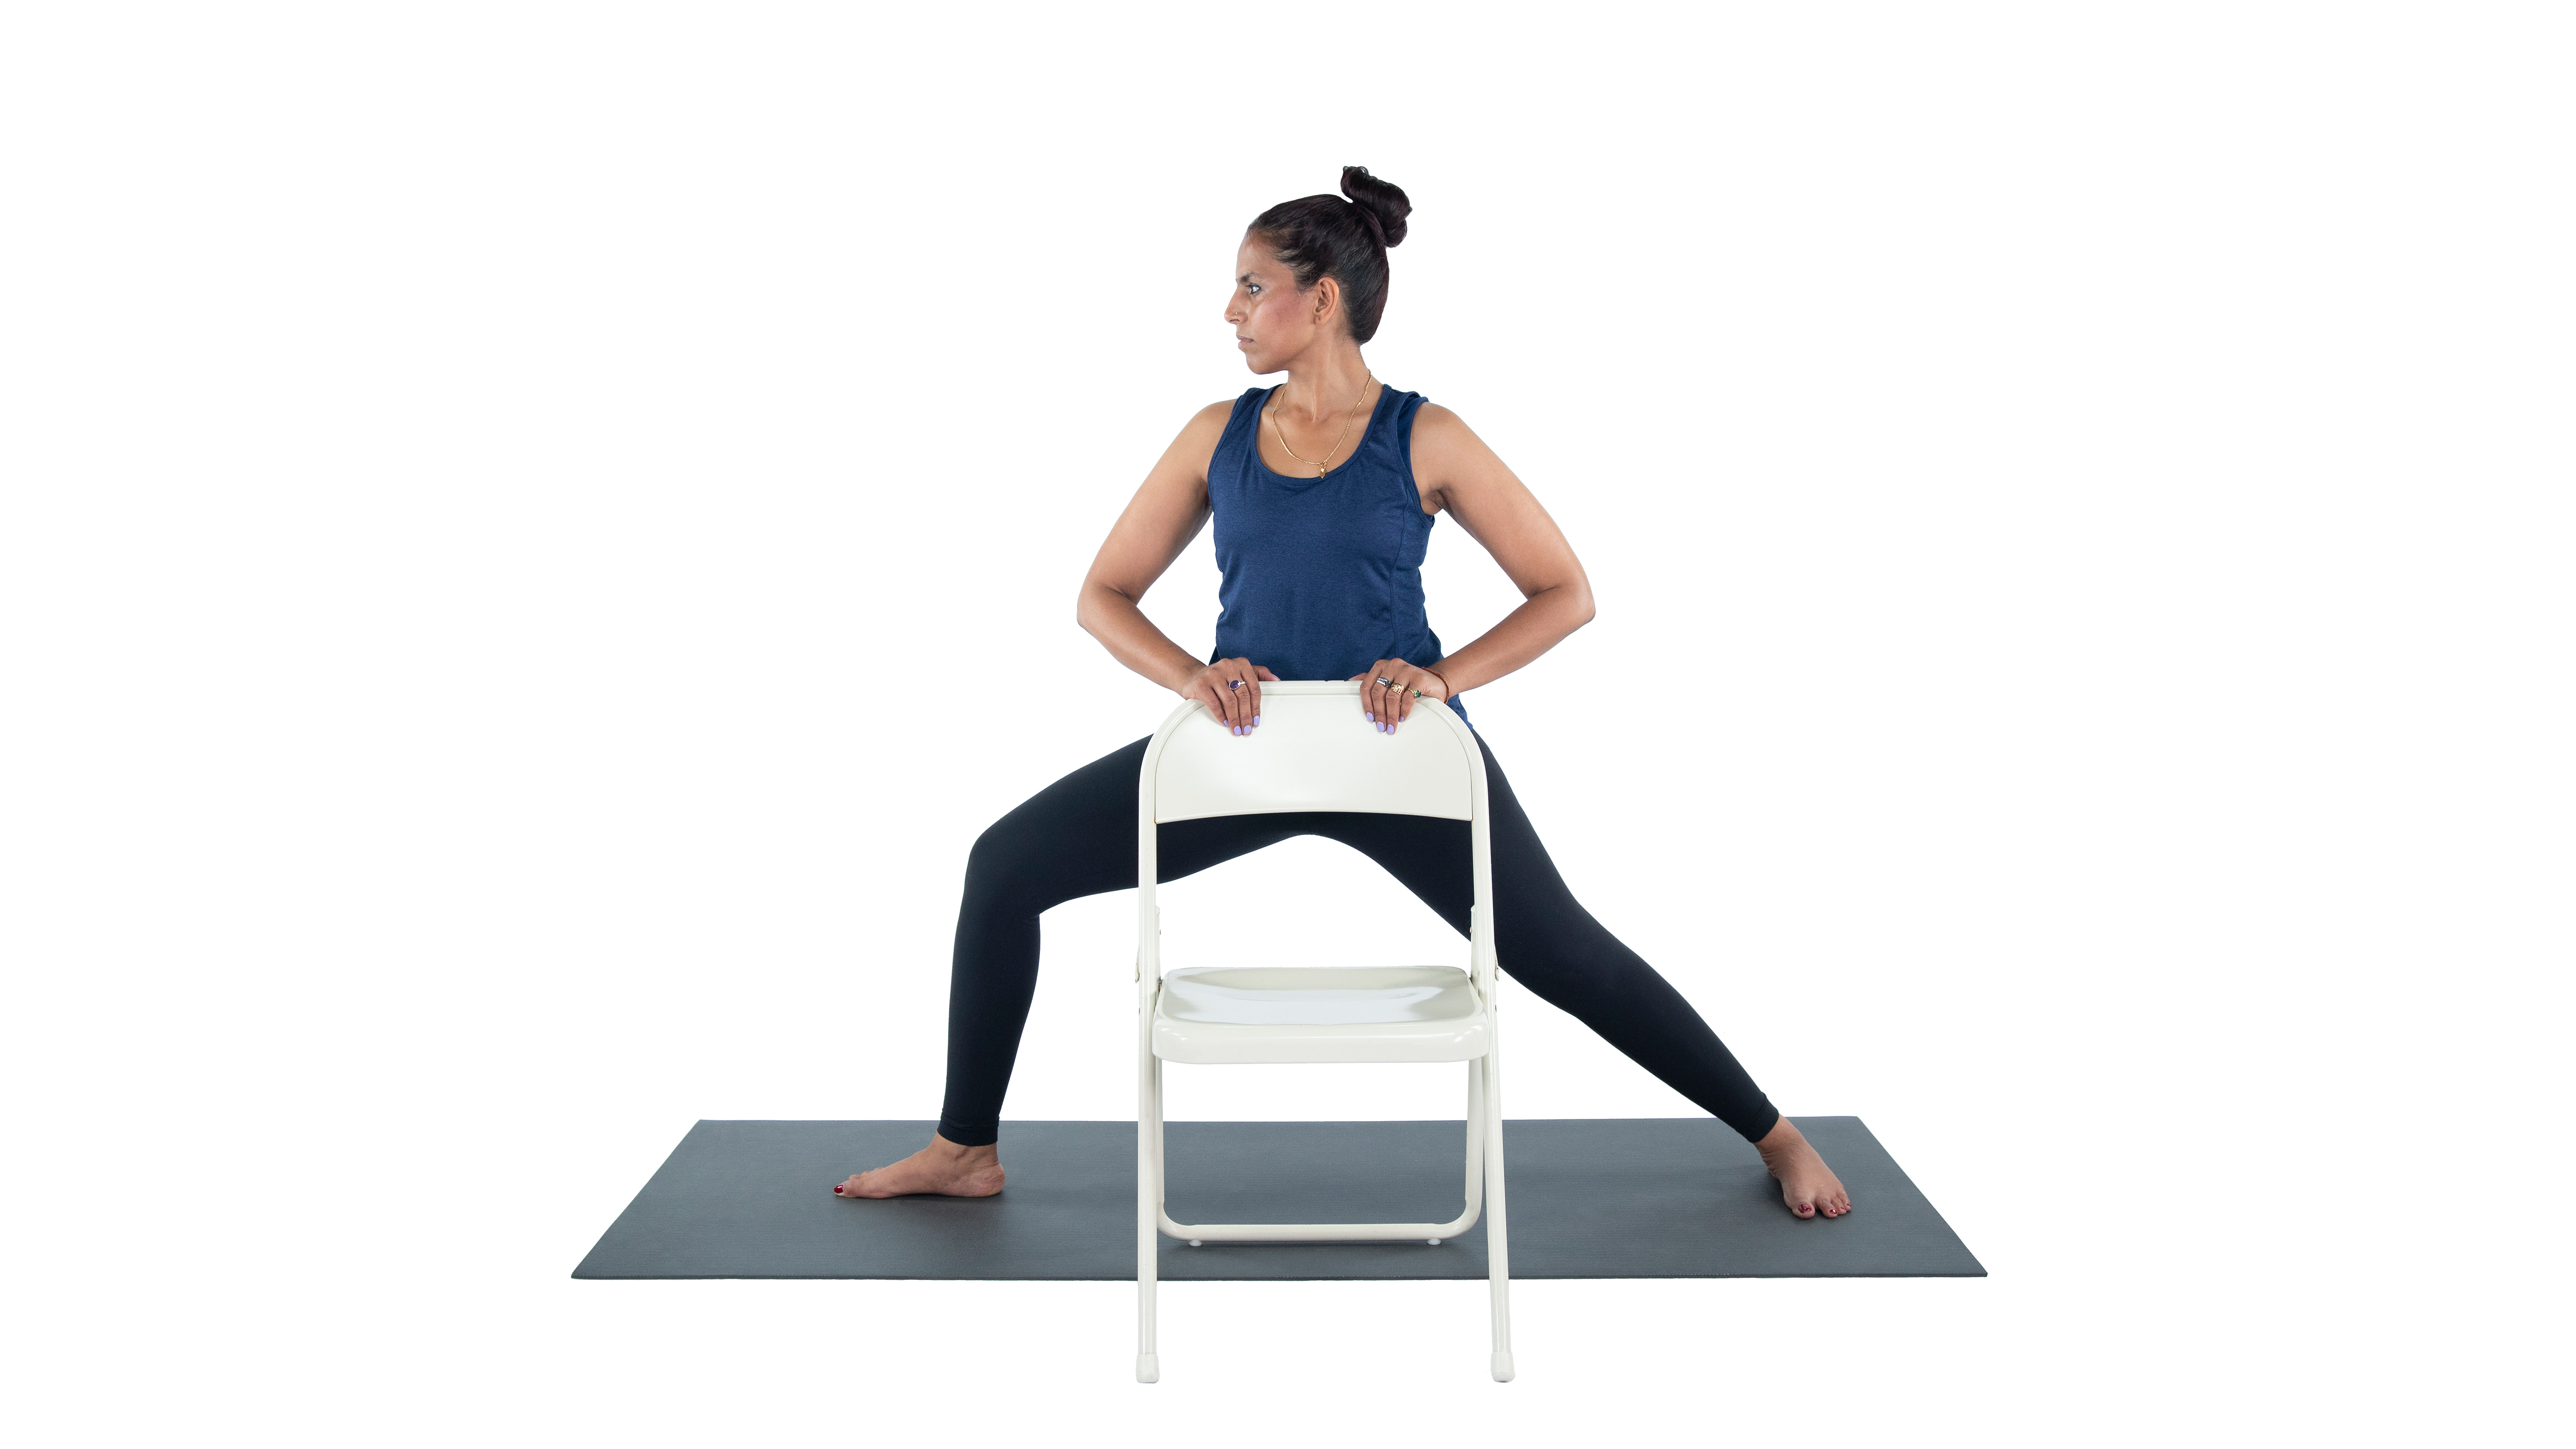 Woman with MS practicing warrior 2 yoga pose (virabhadrasana II) with chair assist for balance